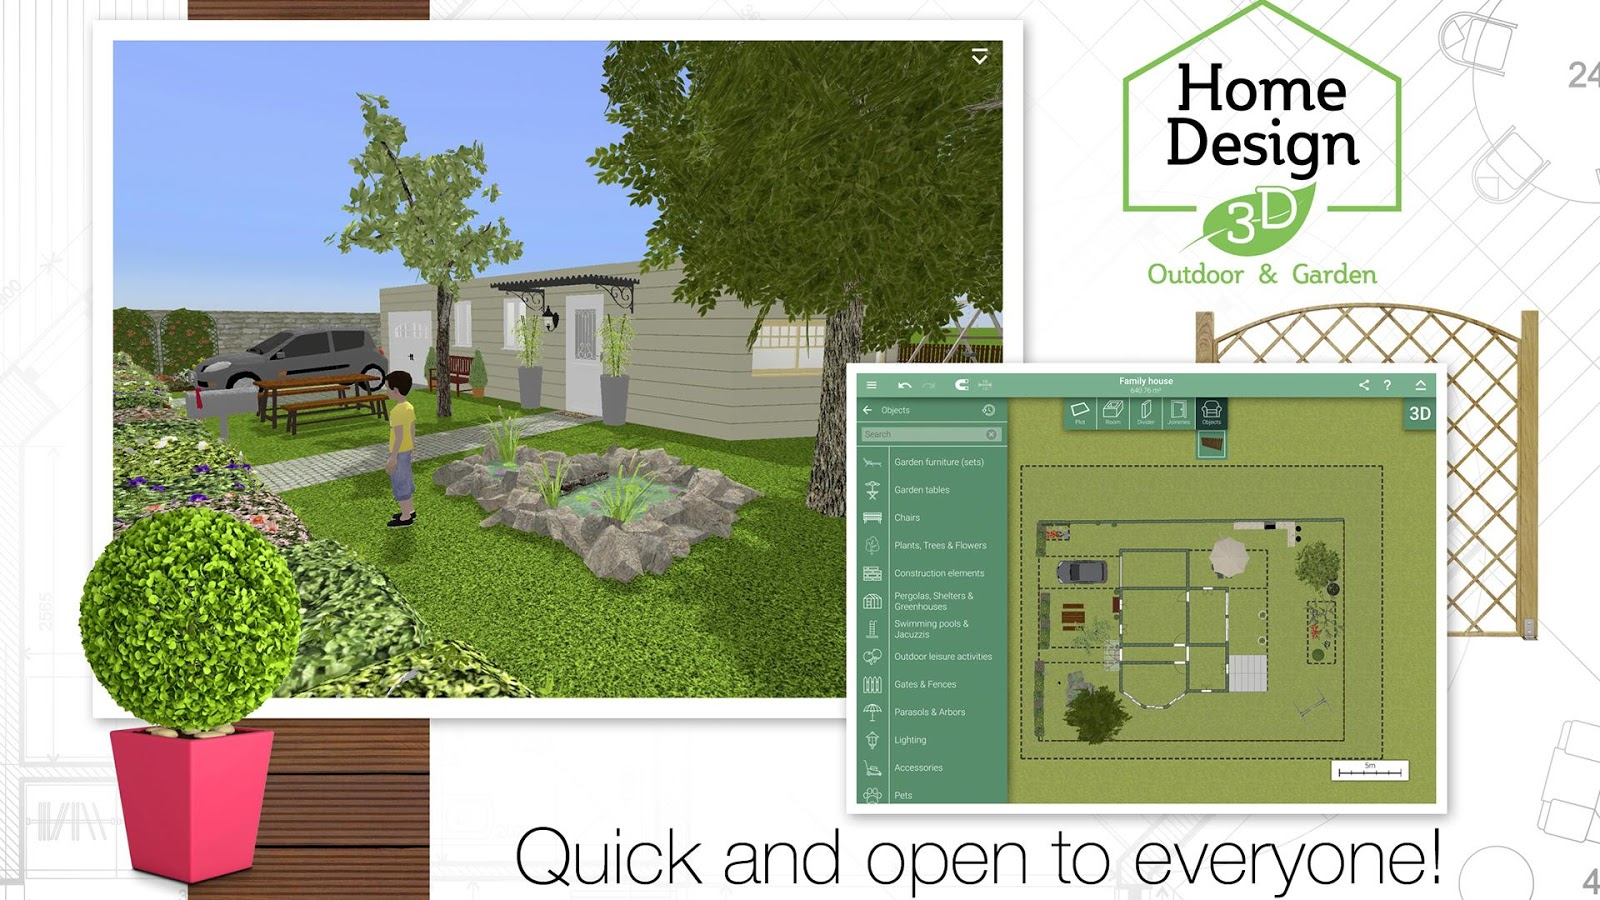 home design 3d outdoor garden 4 2 4 apk obb data file download